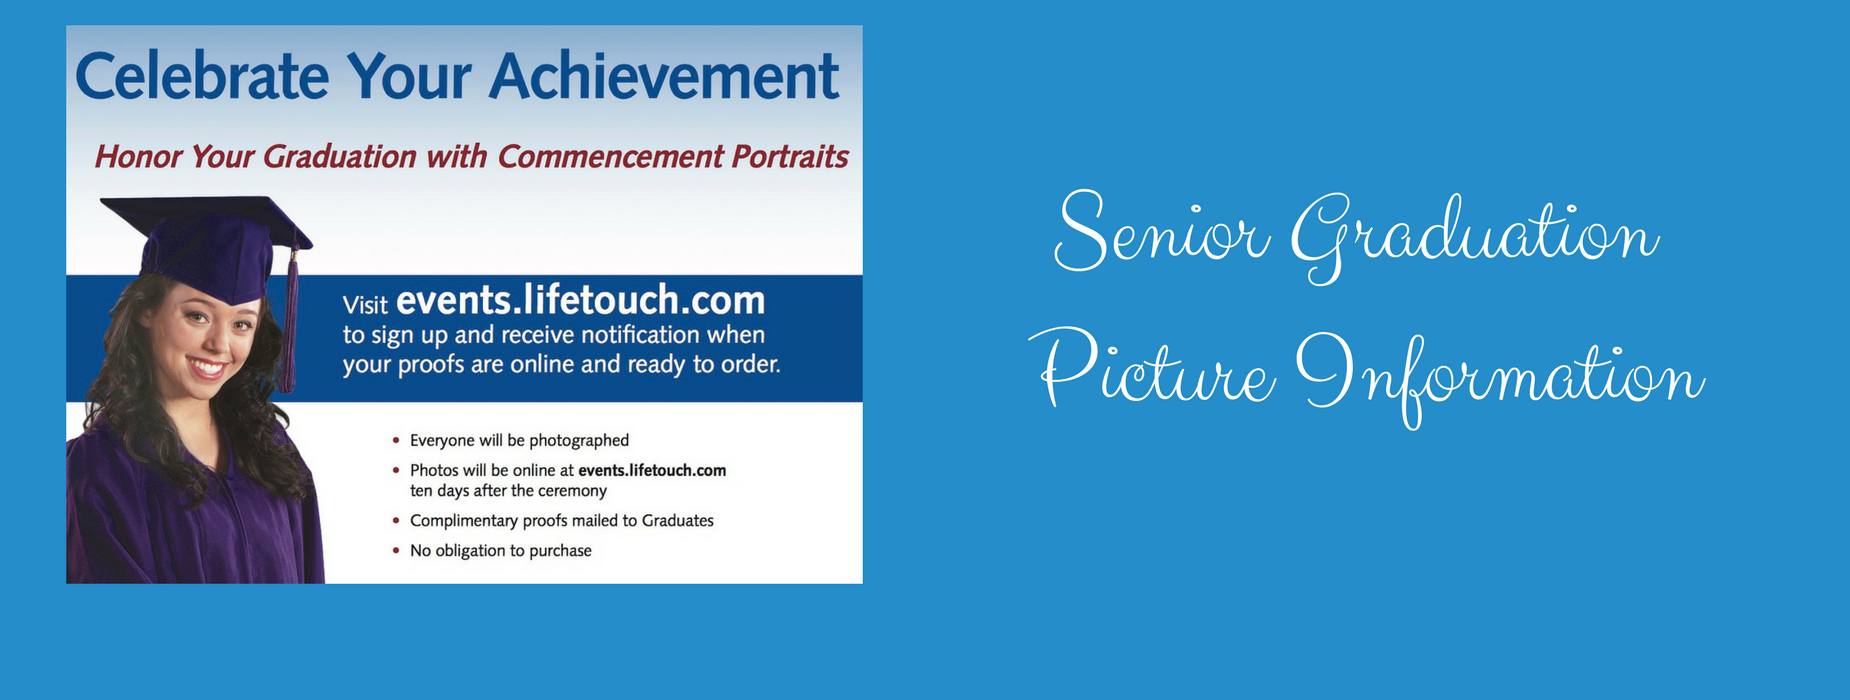 Senior Graduation Picture Information, visit events.lifetouch.com to sign up for notifications